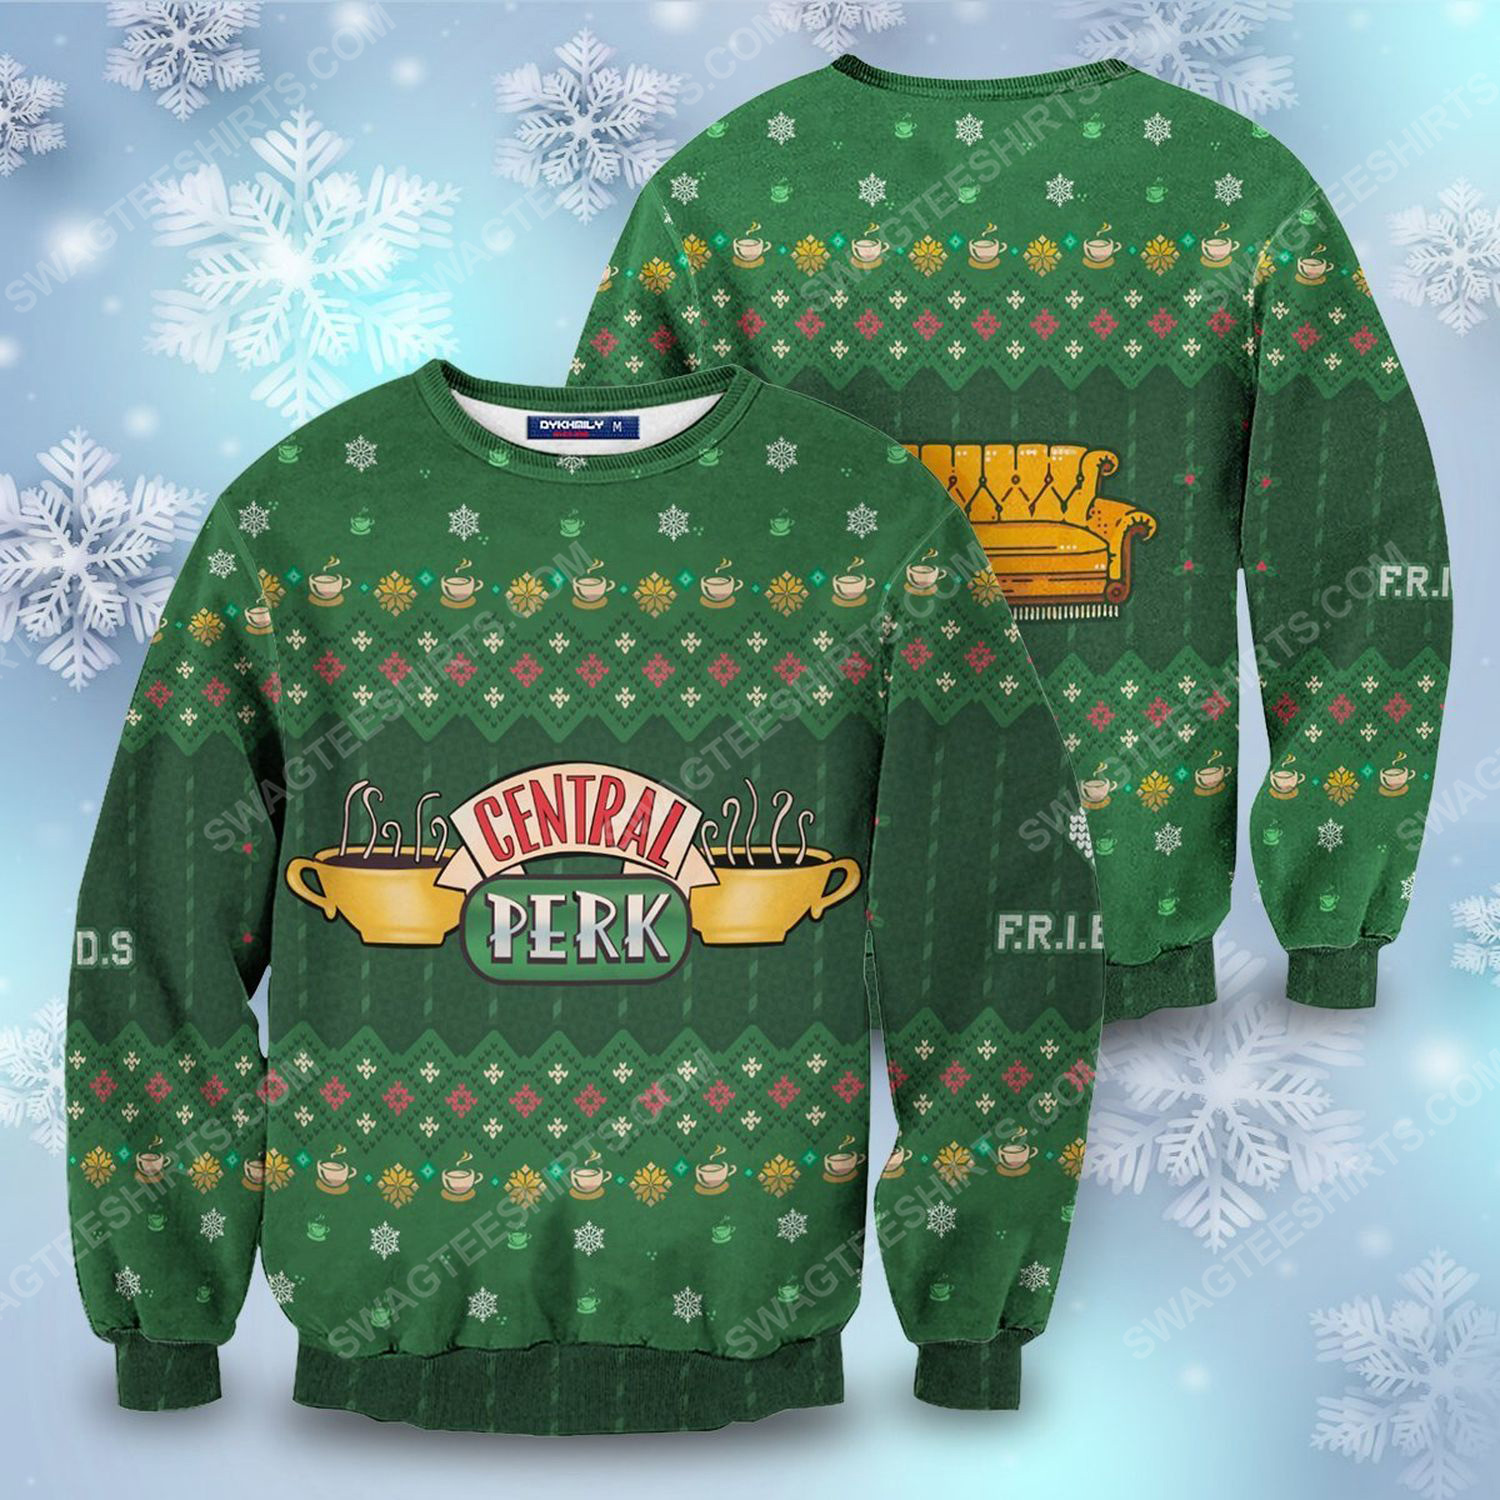 Friends central perk full print ugly christmas sweater 1